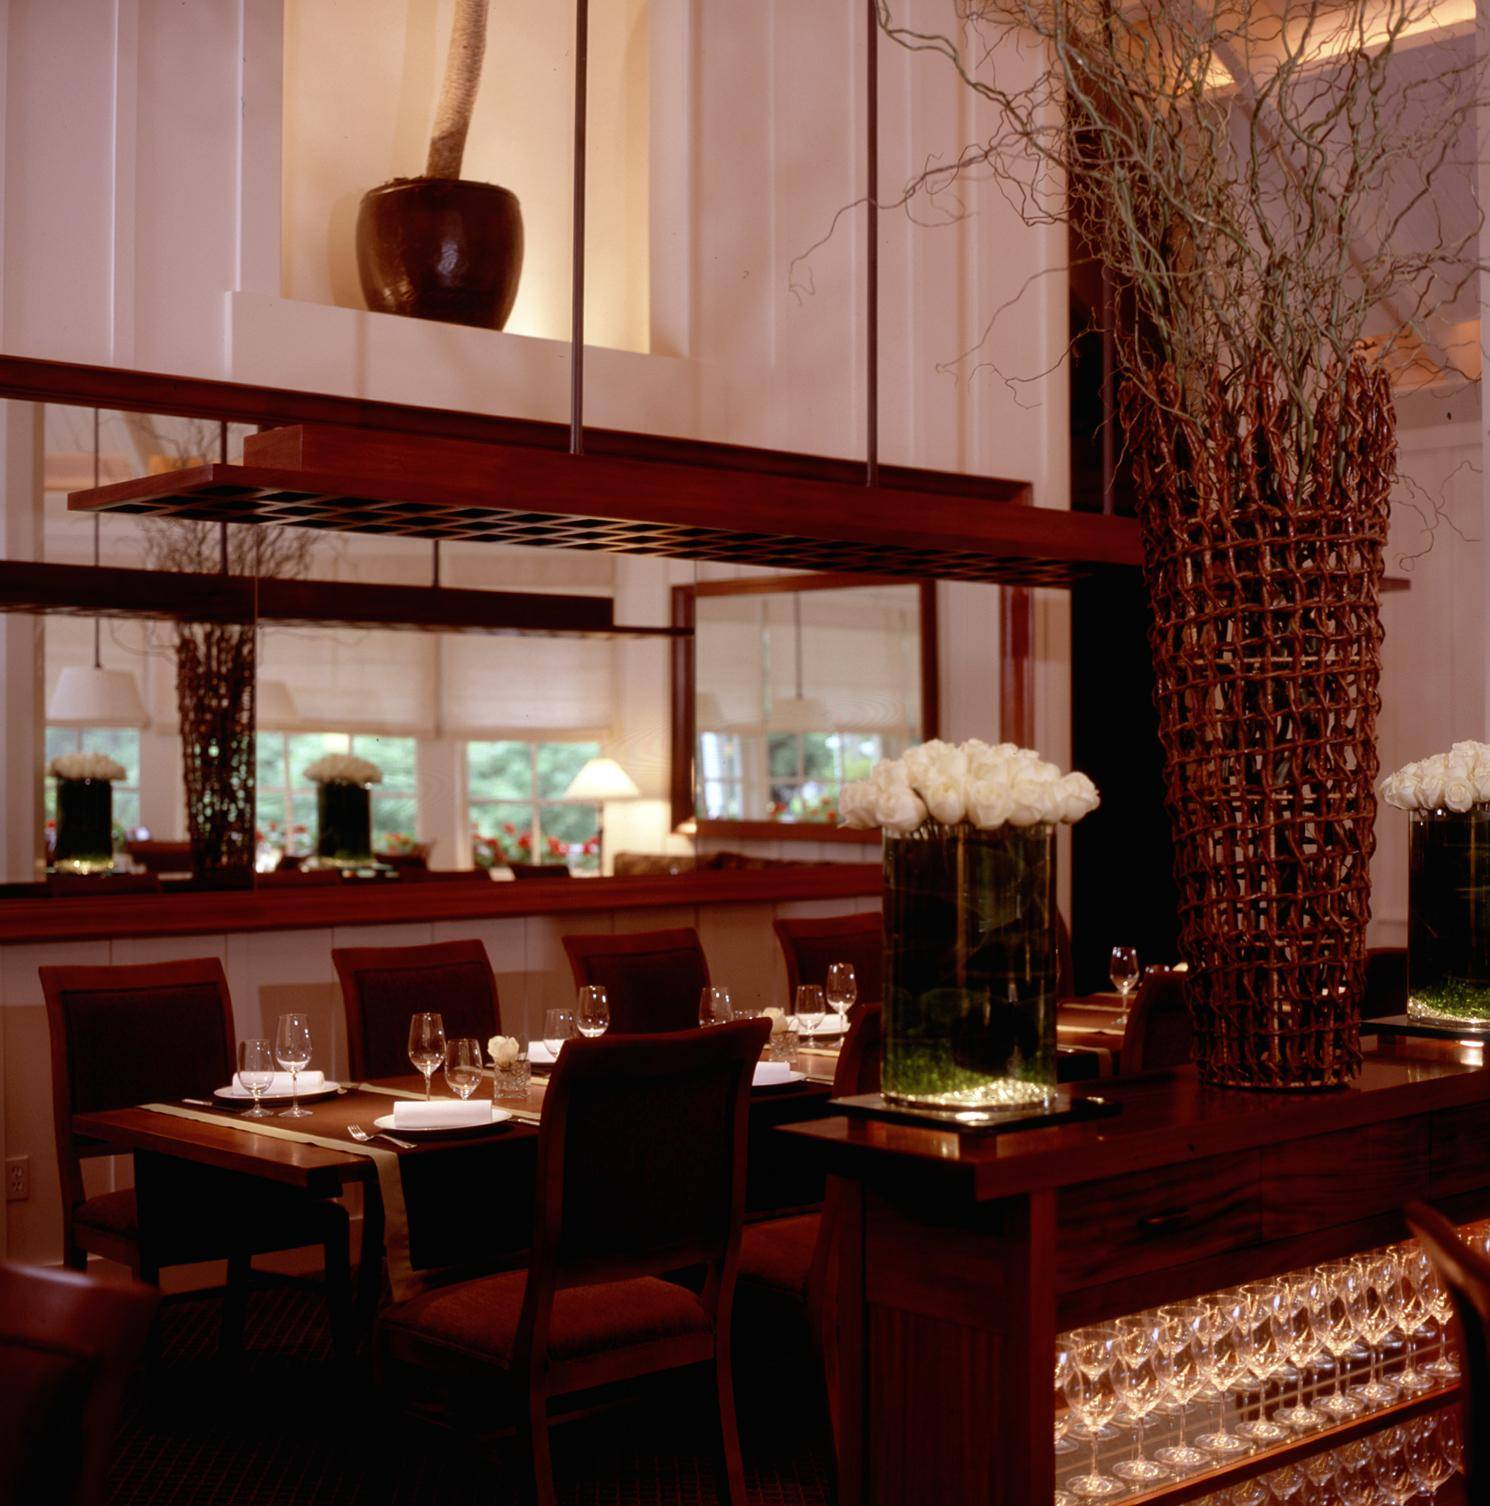 The Restaurant at Meadowood Dining Room